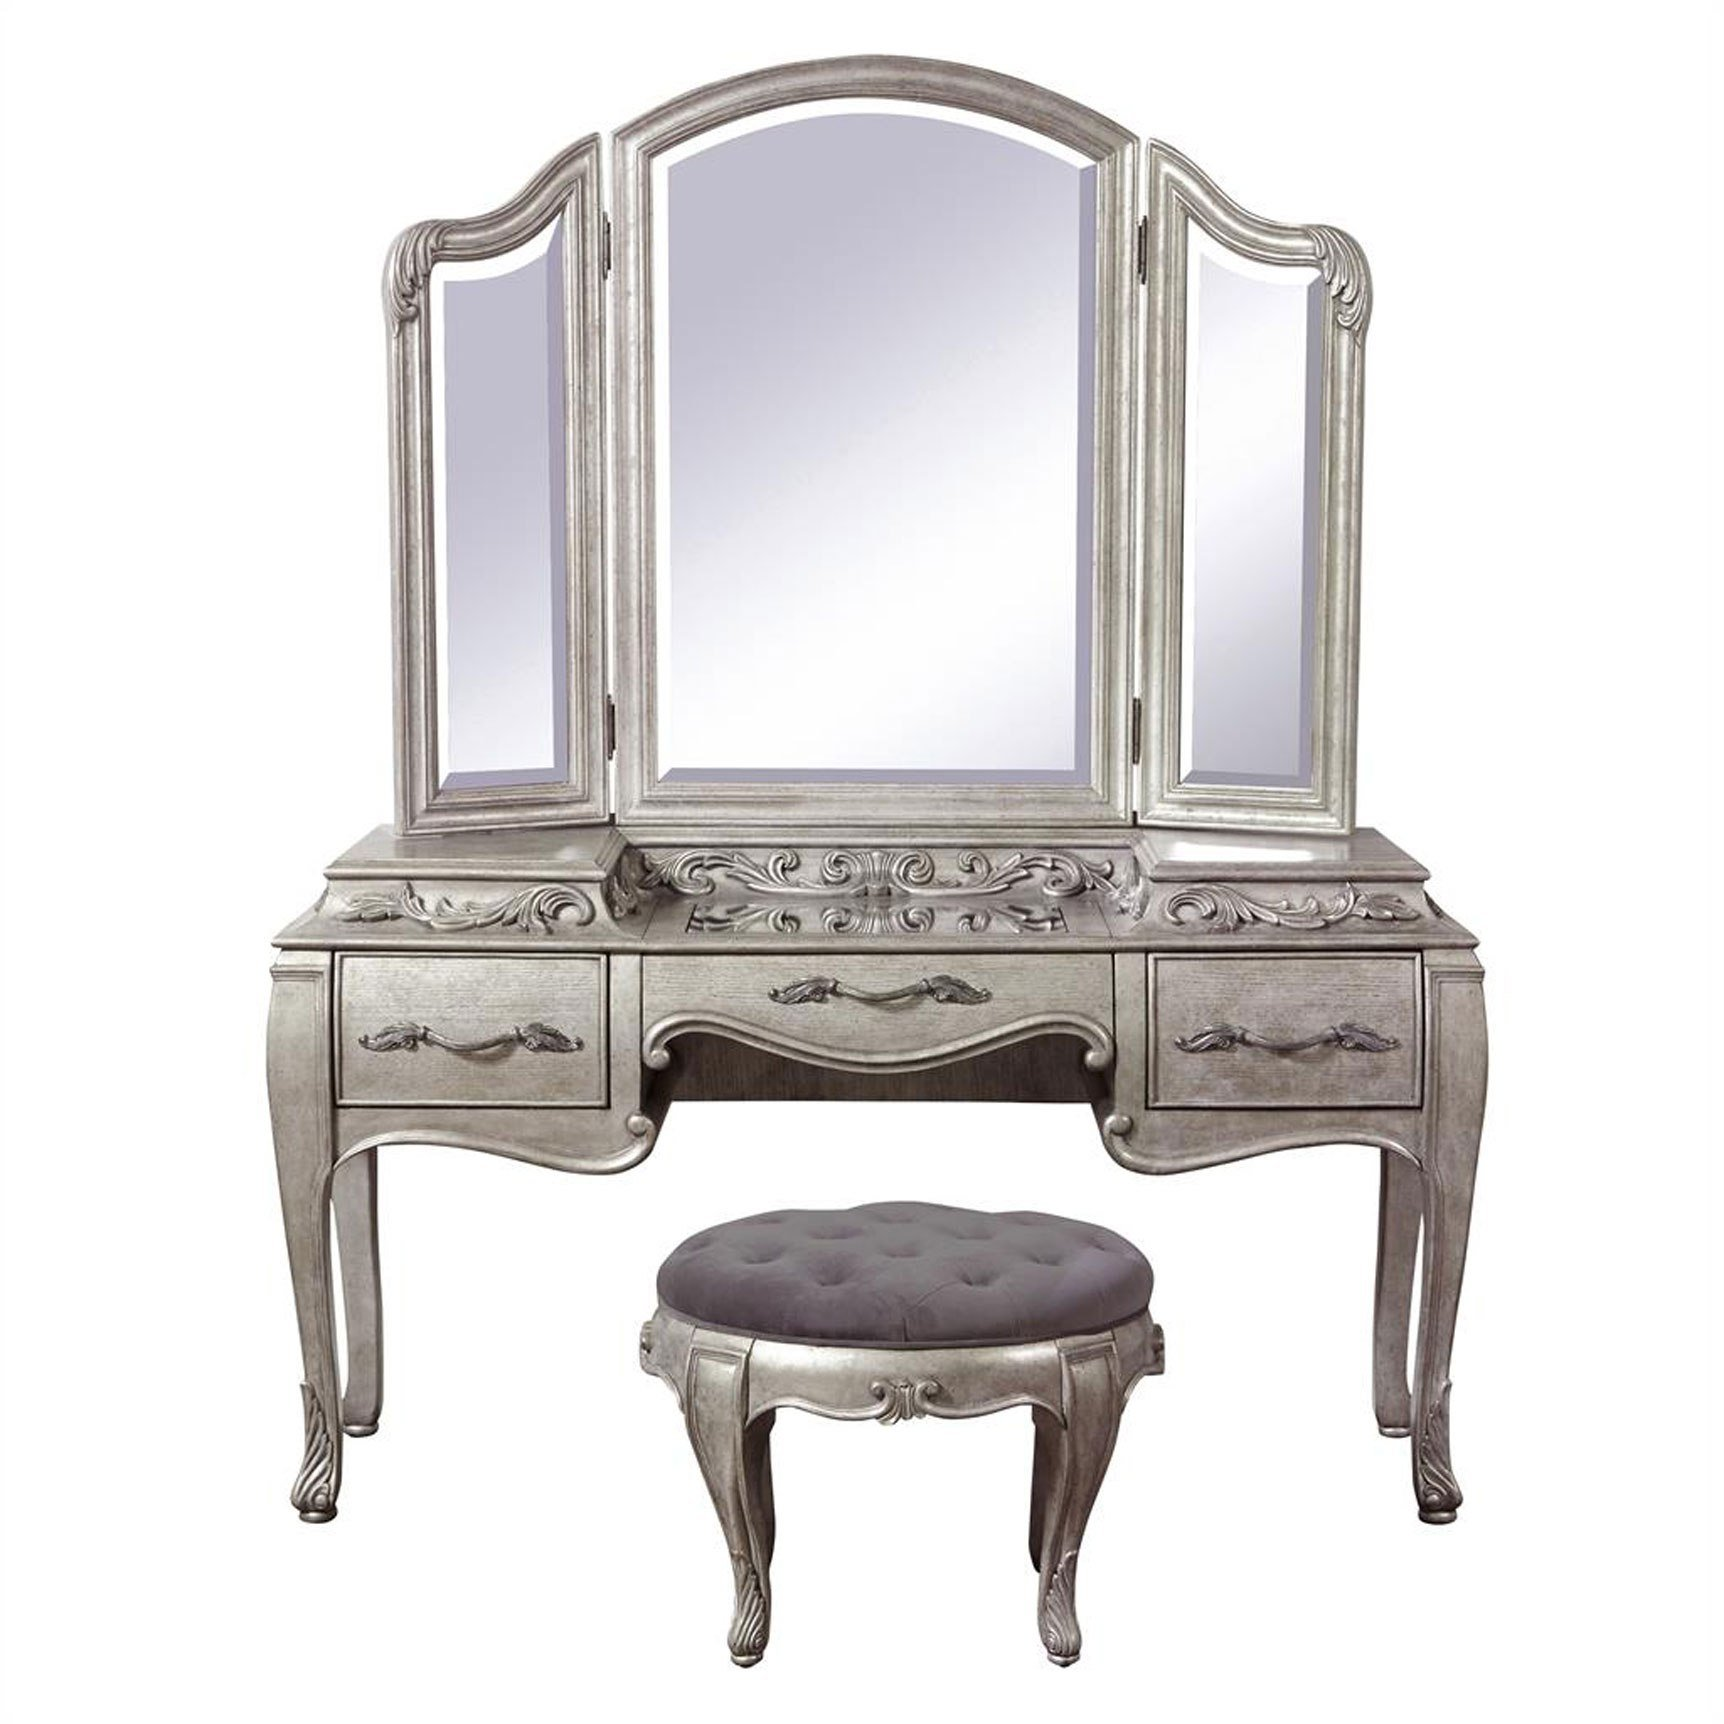 Best Pulaski Furniture Rhianna 3 Piece Vanity With Stool In With Pictures